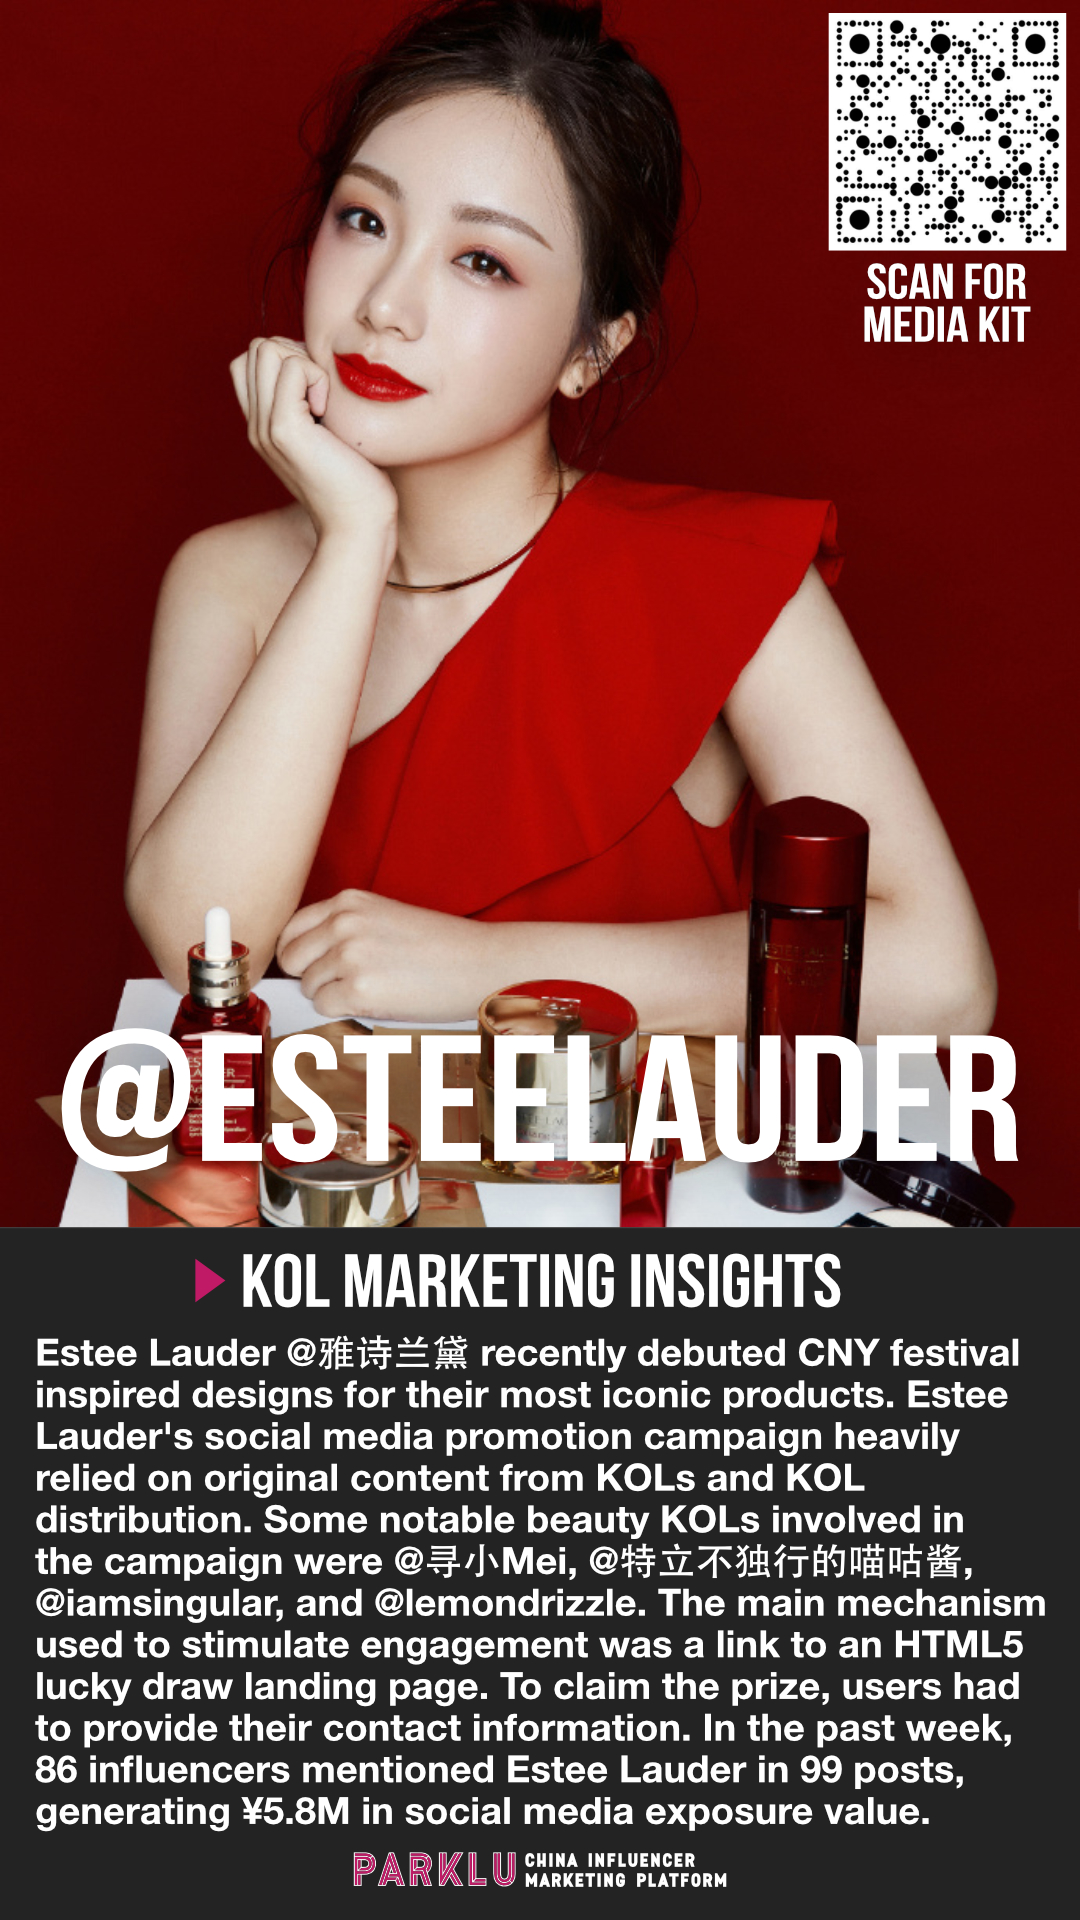 Estee Lauder CNY Inspired Designs & H5 Lucky Draw